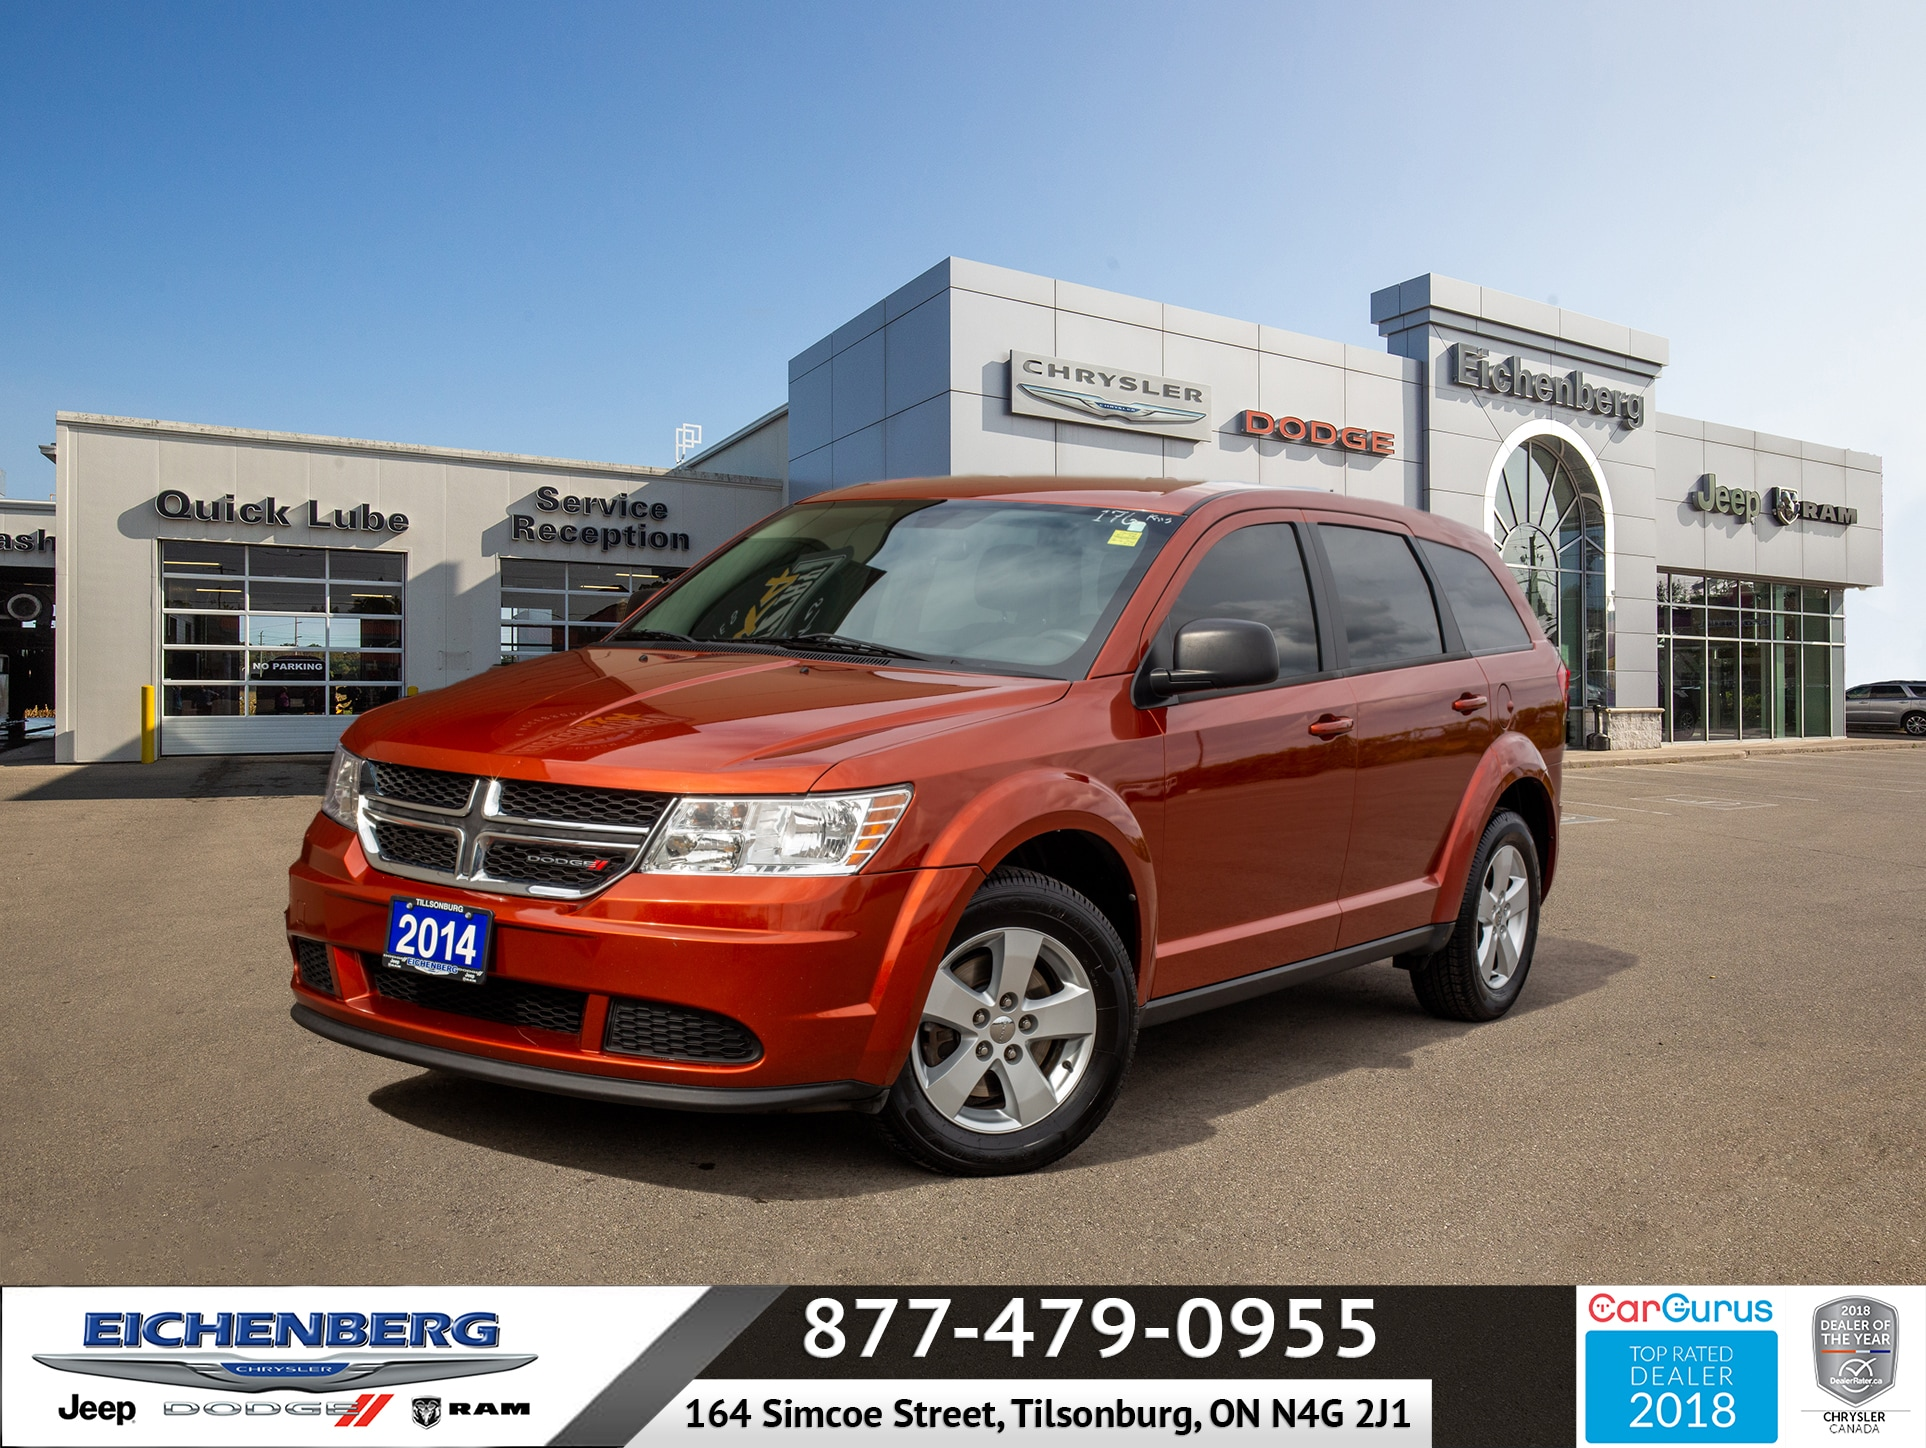 used 2014 Dodge Journey car, priced at $7,499